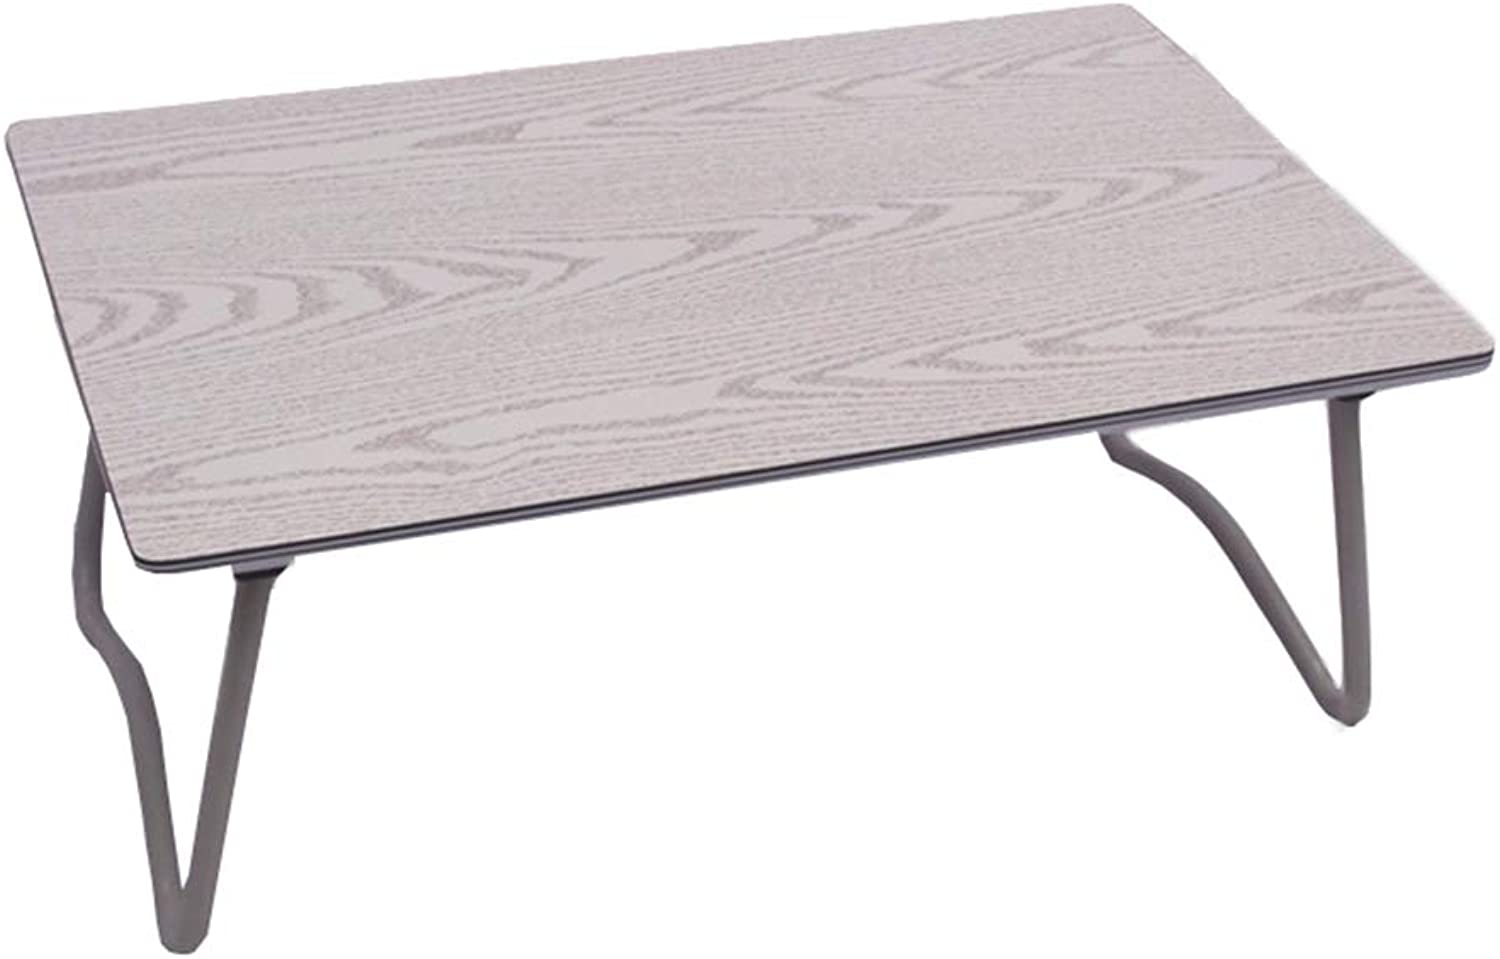 Wood Folding Computer Desk, Non-Slip Lightweight Stable Sturdy Anti-Corrosion and Rust Prevention Bearing Capacity Large Modern Lazy Table Dormitory,3